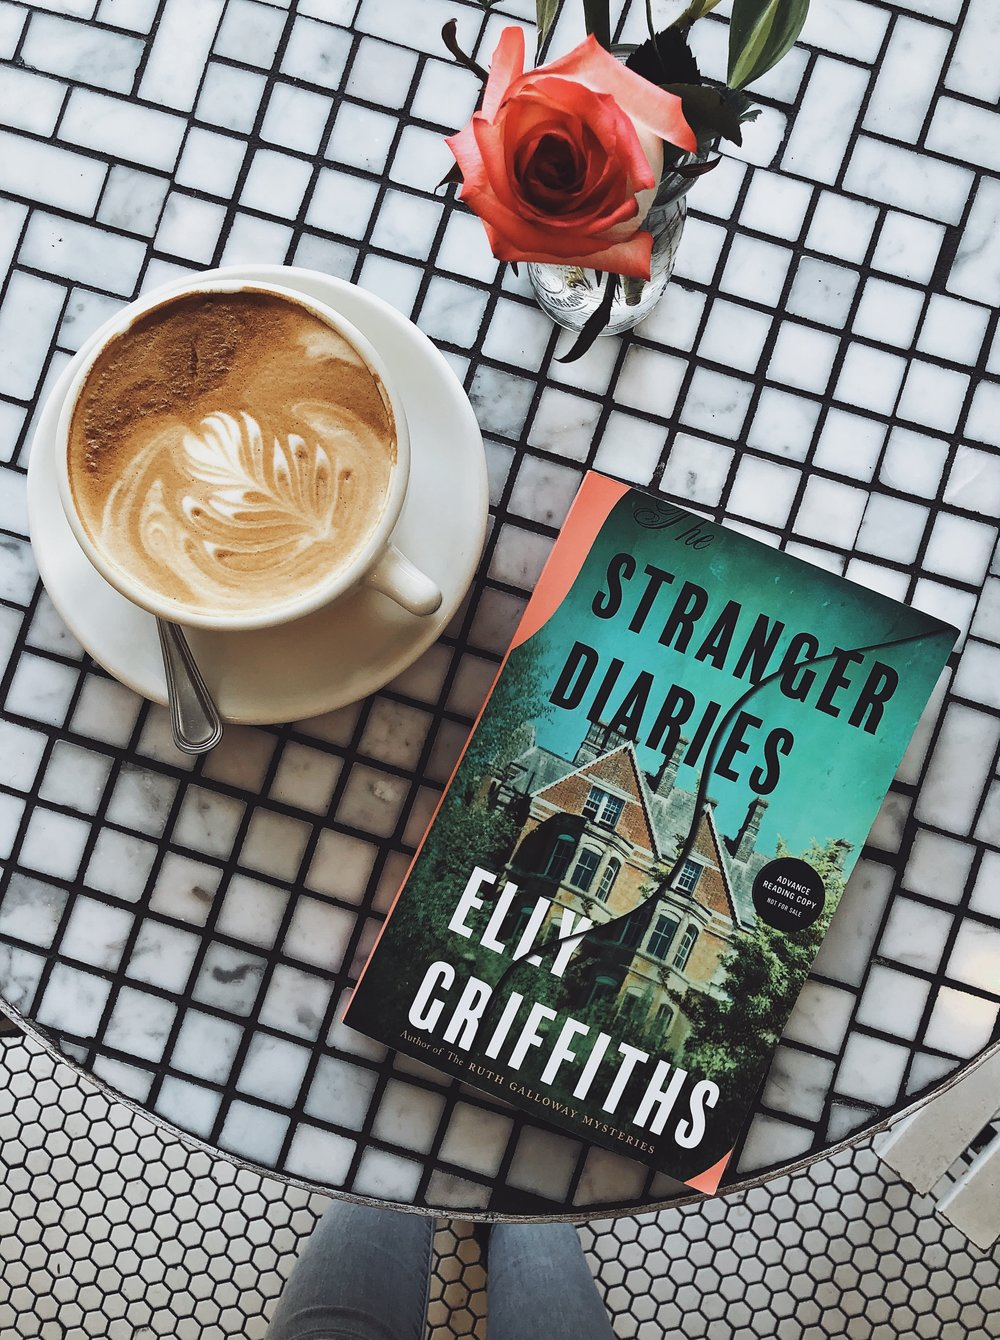 The Stranger Diaries_Elly Griffiths.jpg